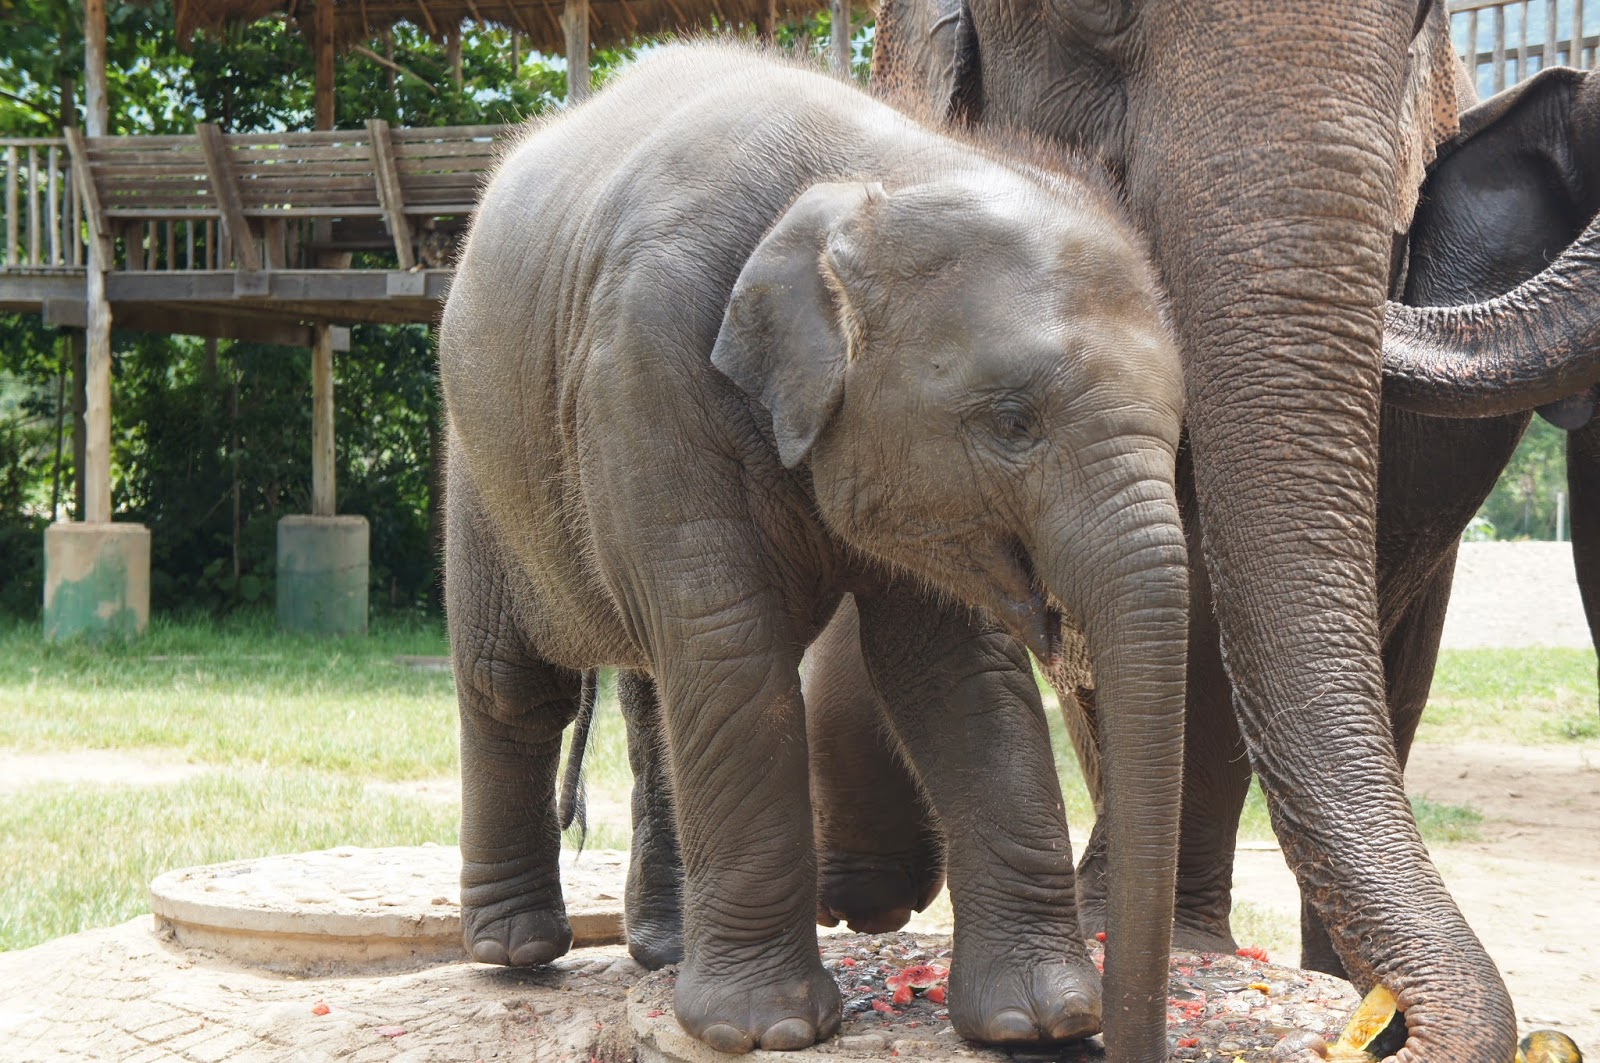 Chiang Mai - Everyone crowded around the baby elephant